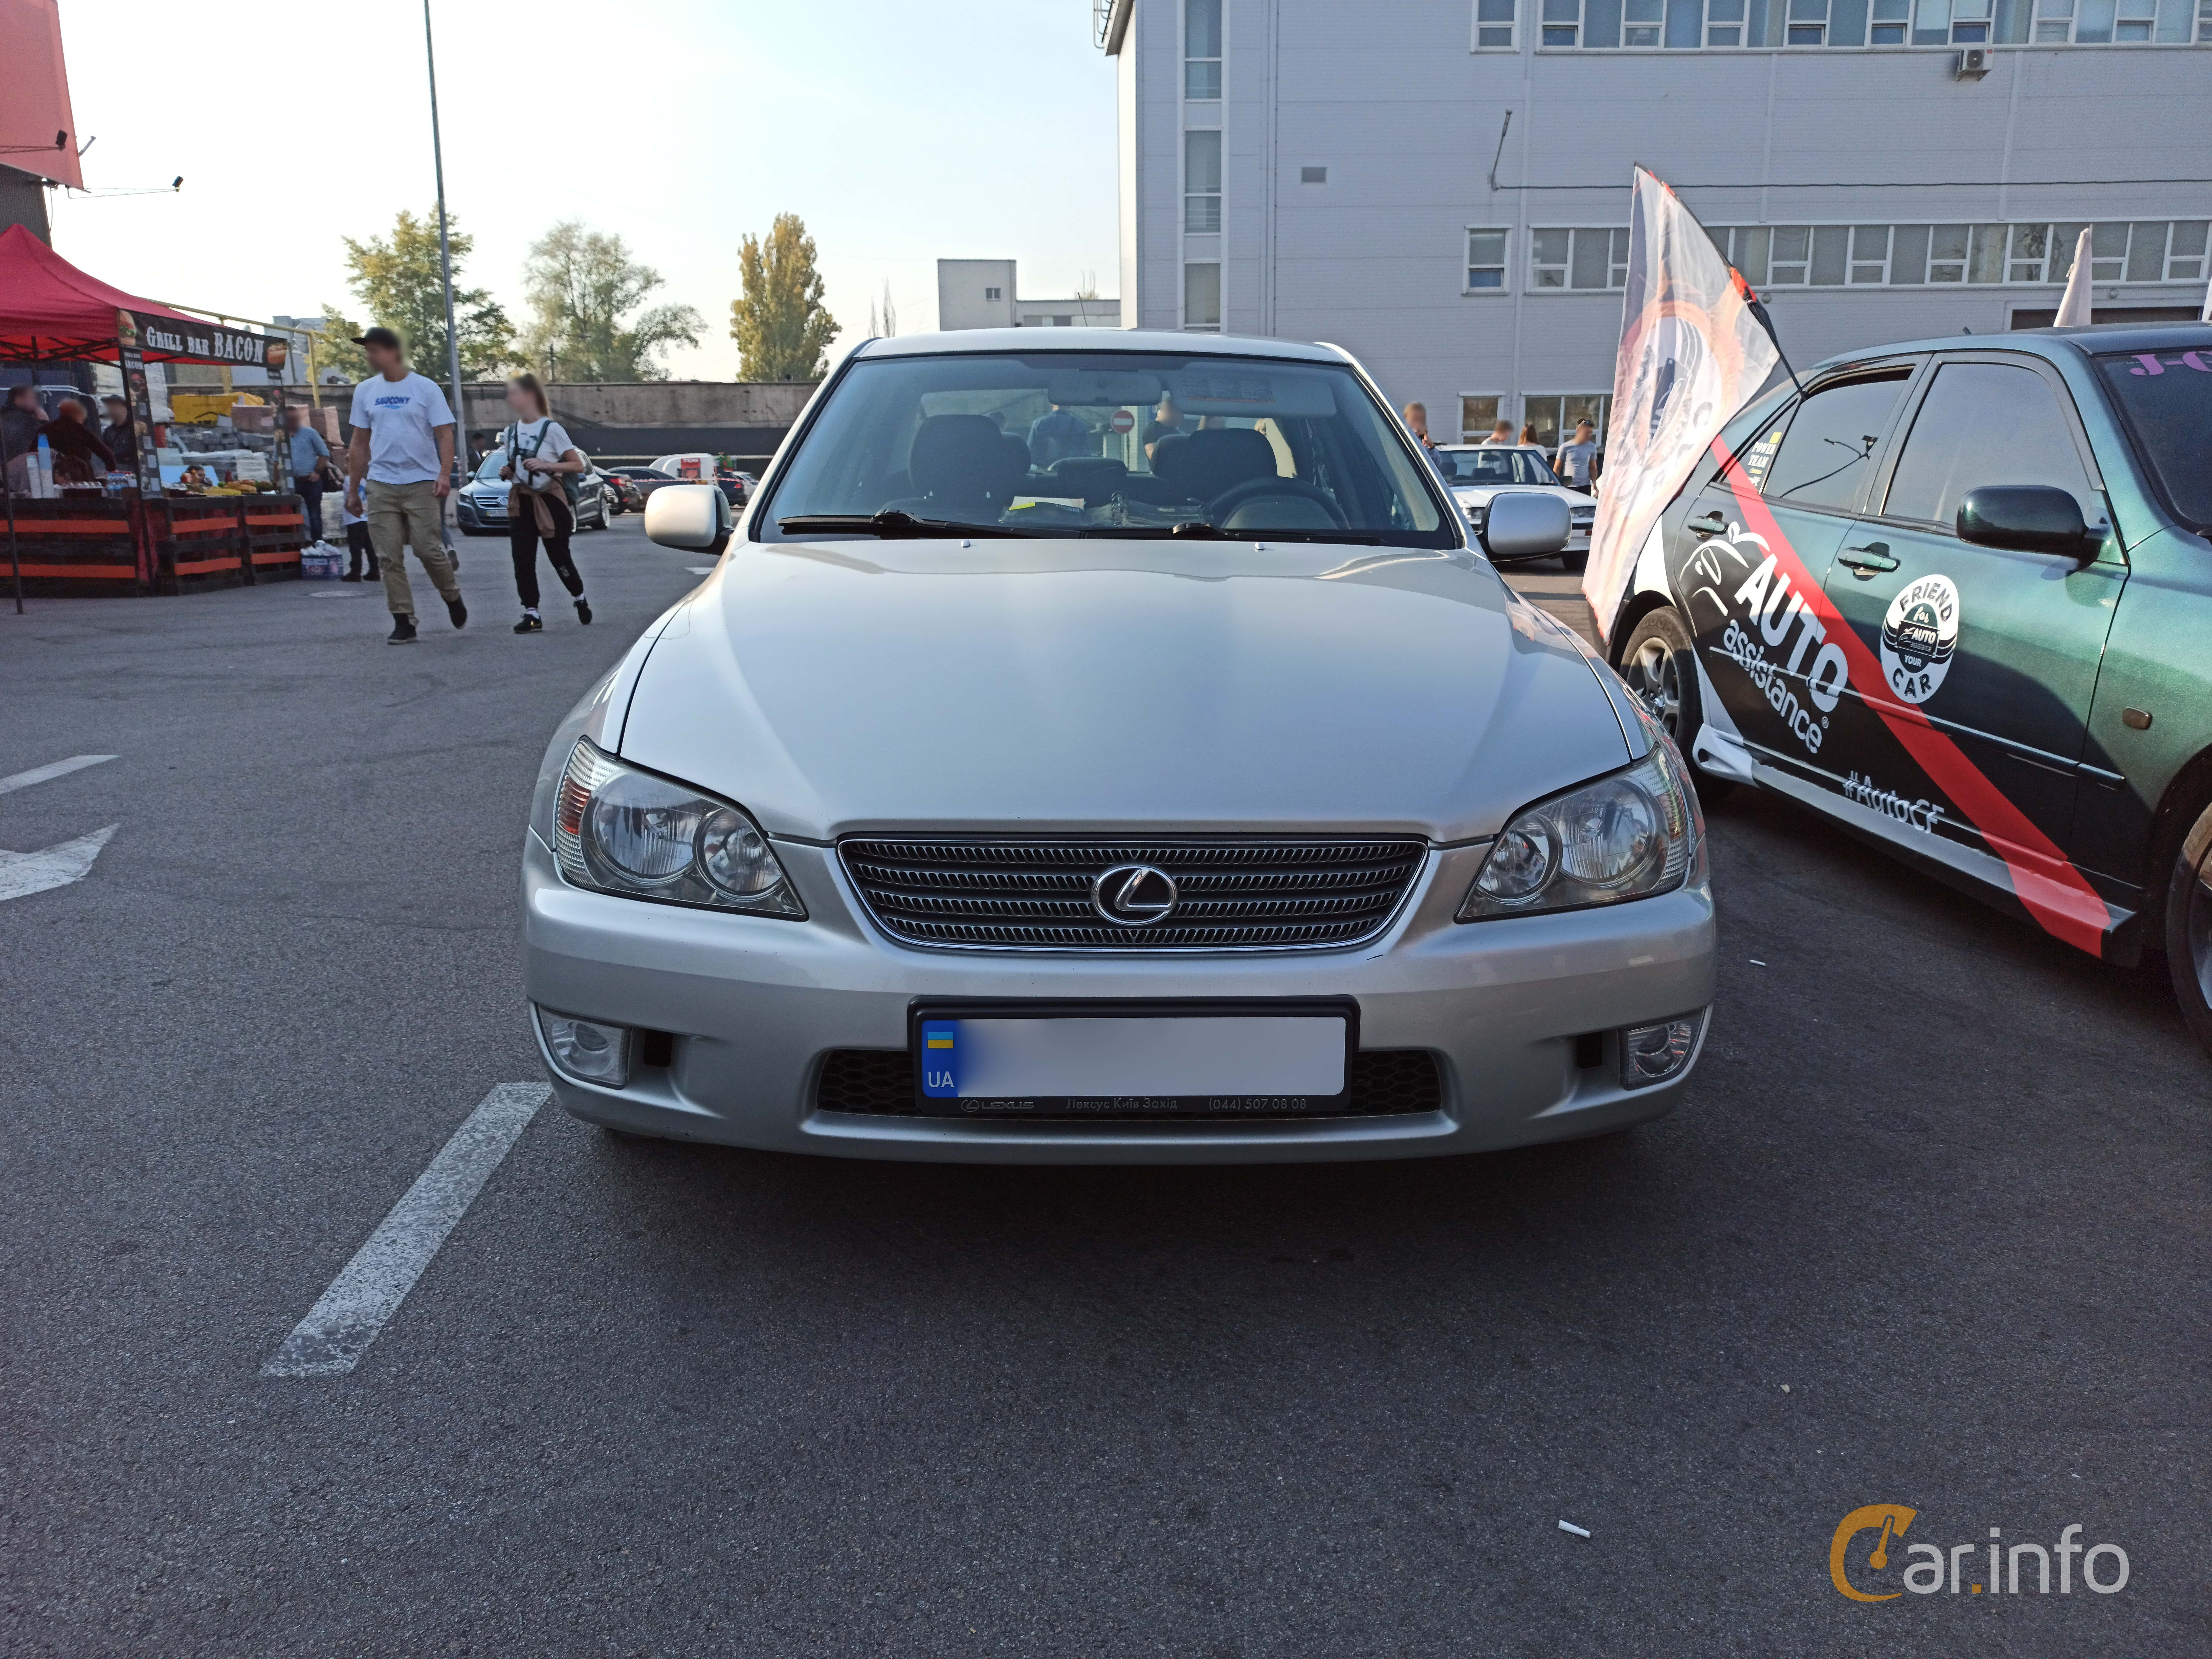 4 images of Lexus IS 200 2.0 Automatic, 155hp, 1999 by